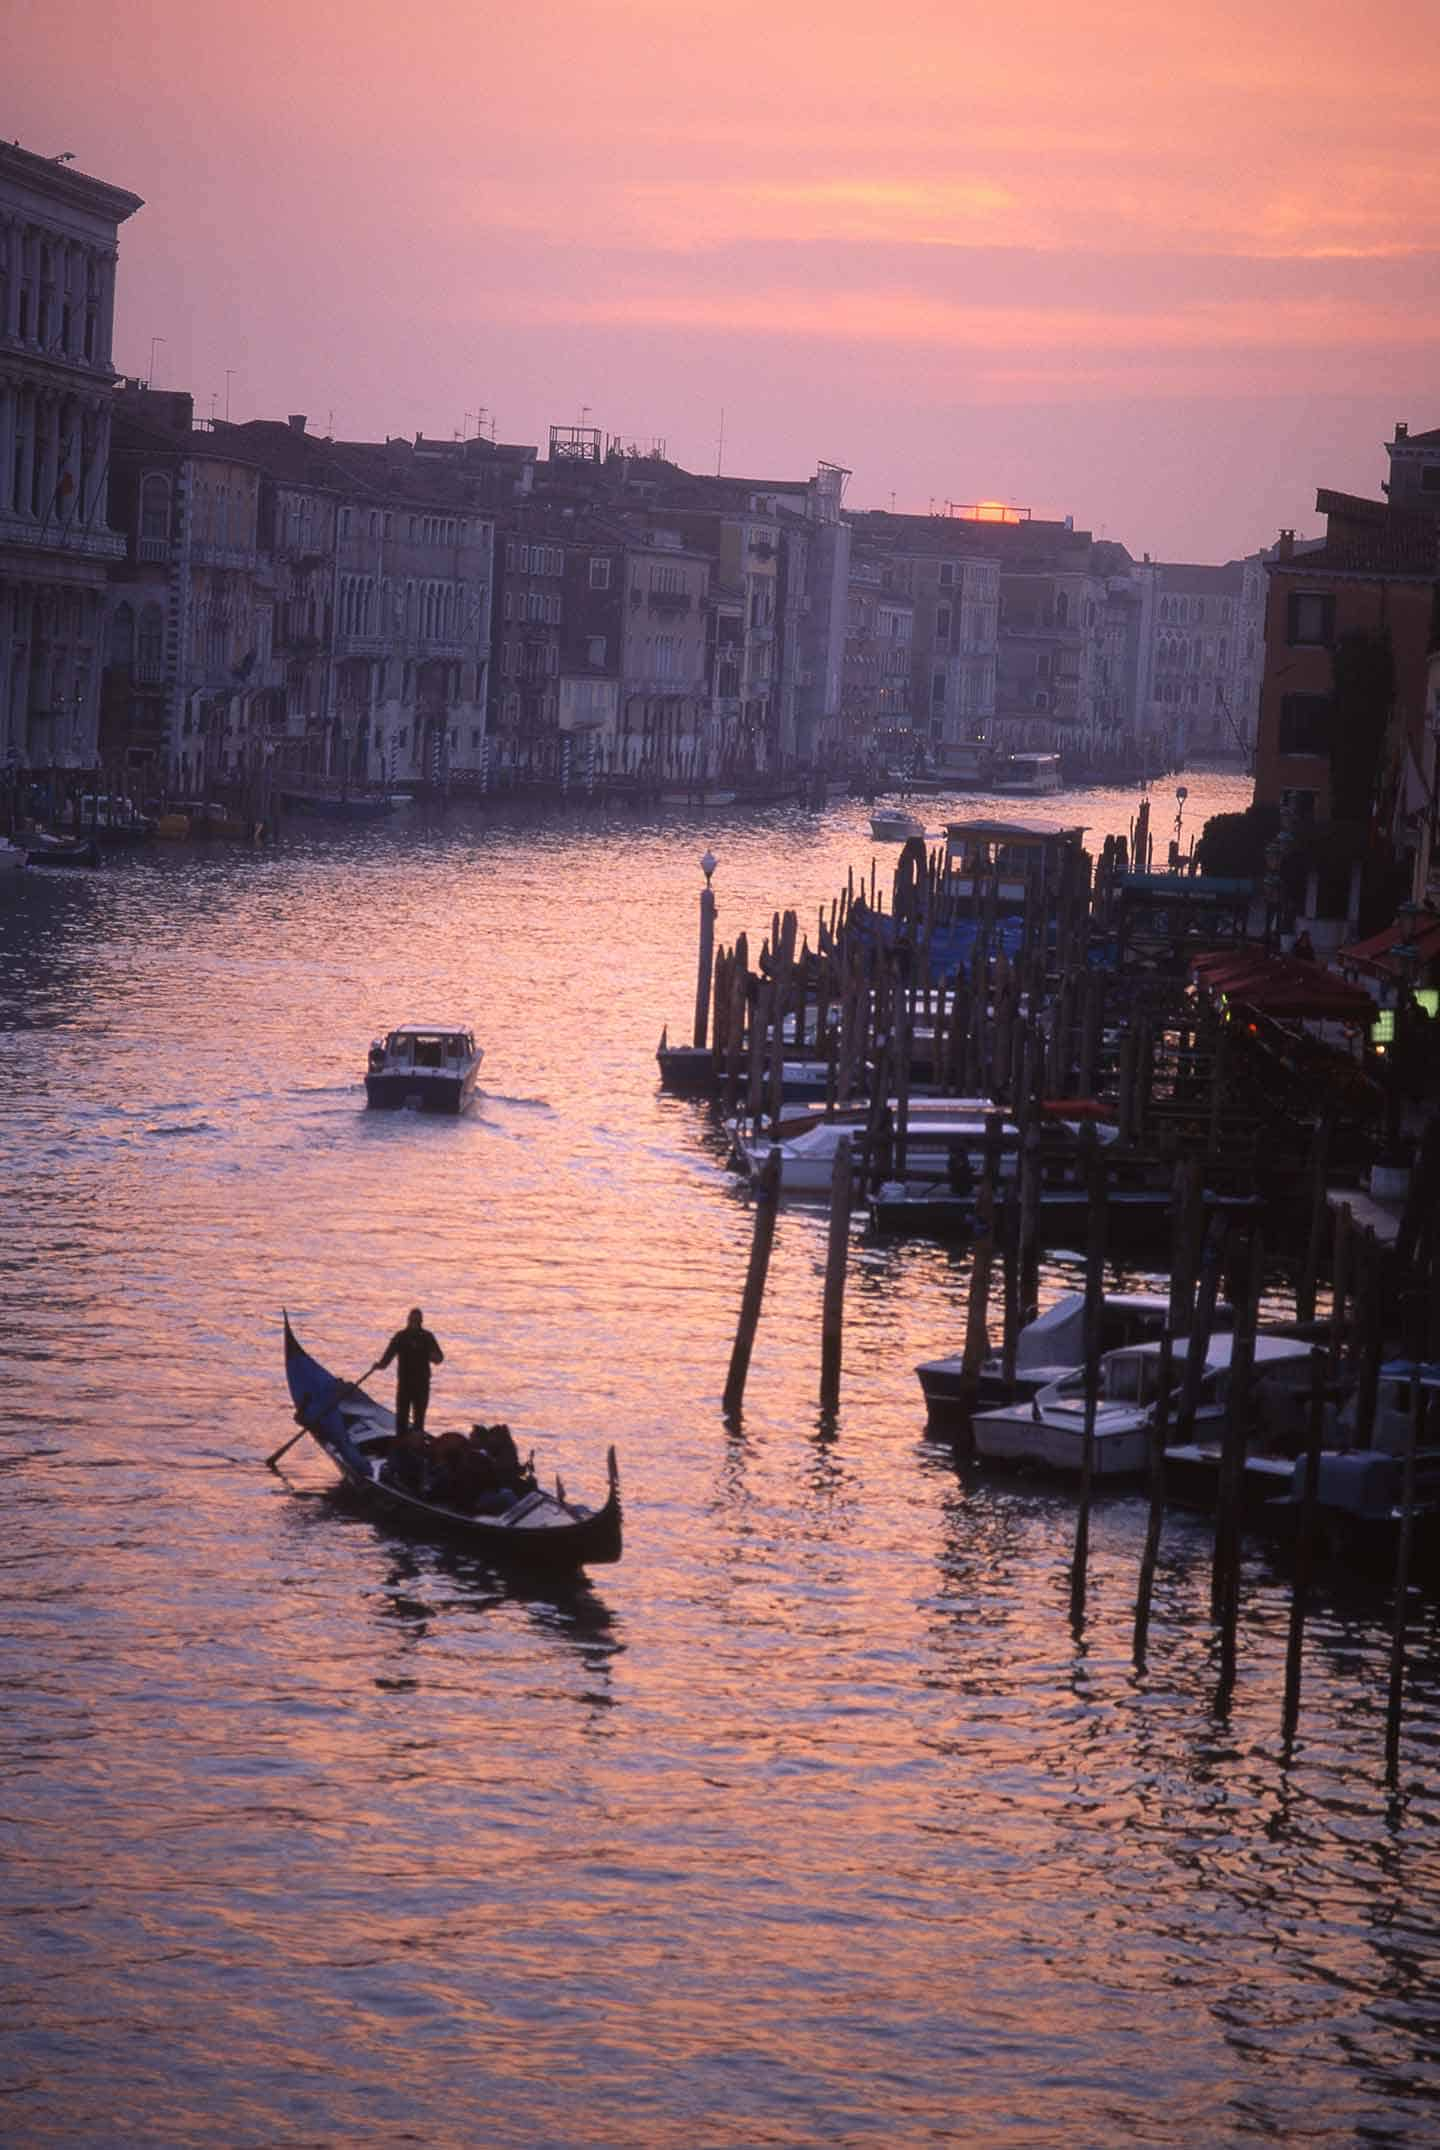 Image of a gondola on the Grand canal, Venice, at sunset